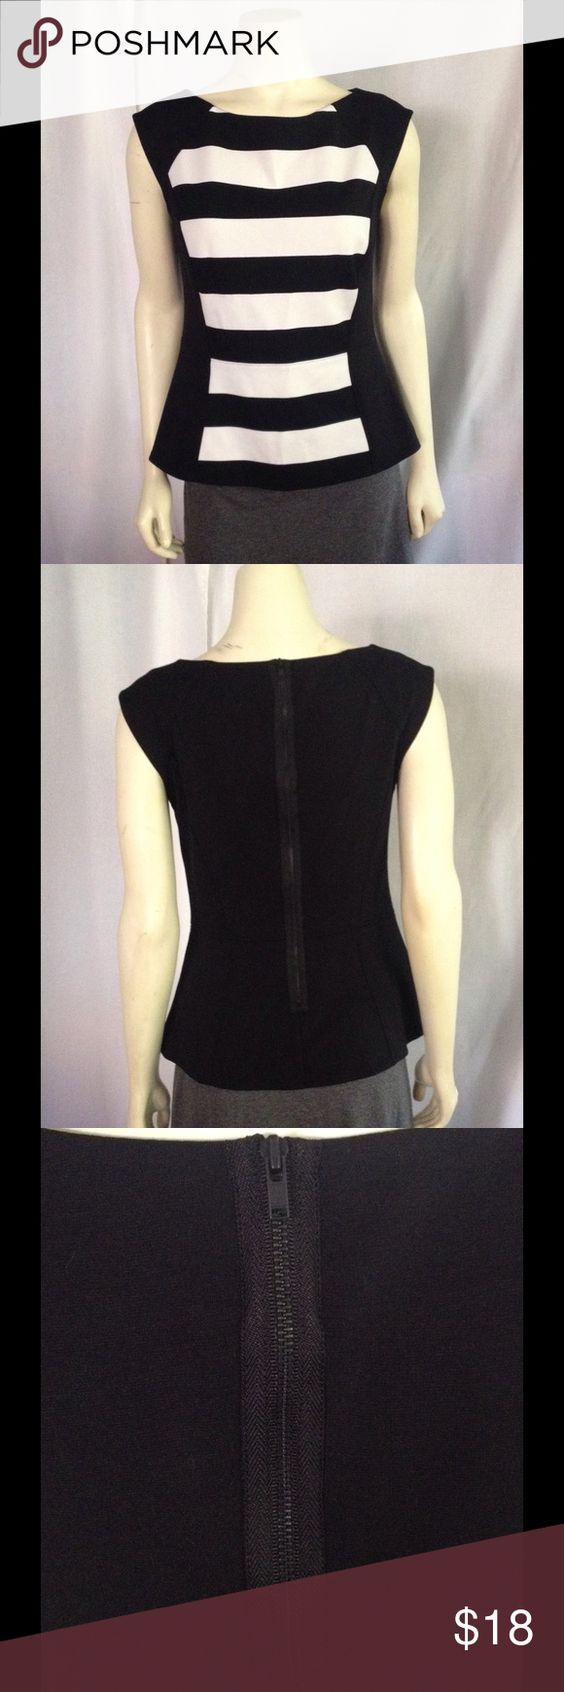 """NWOT Halogen Nordstrom b/w colorblock peplum top S NO TRADES.  New without tags! Classy and nicely tailored, with cap sleeves. Long, chunky black rear zipper closure. Lying flat and unstretched, the measurements are: Bust 18"""", Waist 14.5, Bottom hem 20"""", Shoulder to hem 21.5"""". Happy to Bundle and negotiate - Make me an offer! Halogen Tops"""